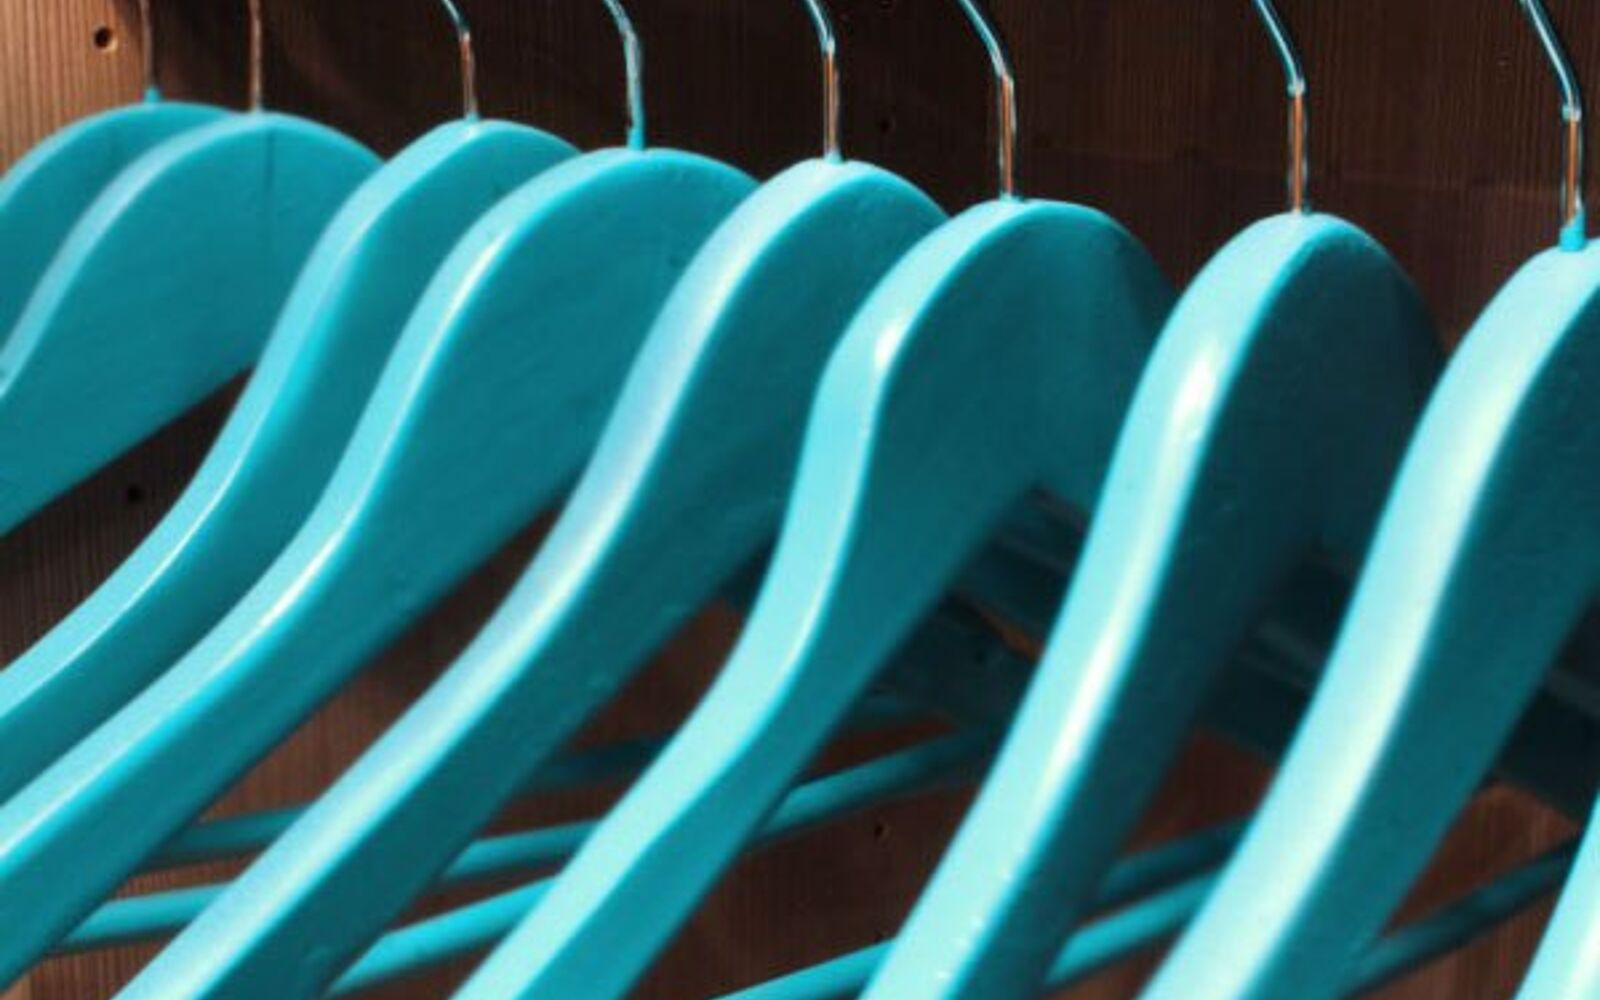 s 30 fun ways to keep your home organized, Decorate Your Hangers With A Bright Color